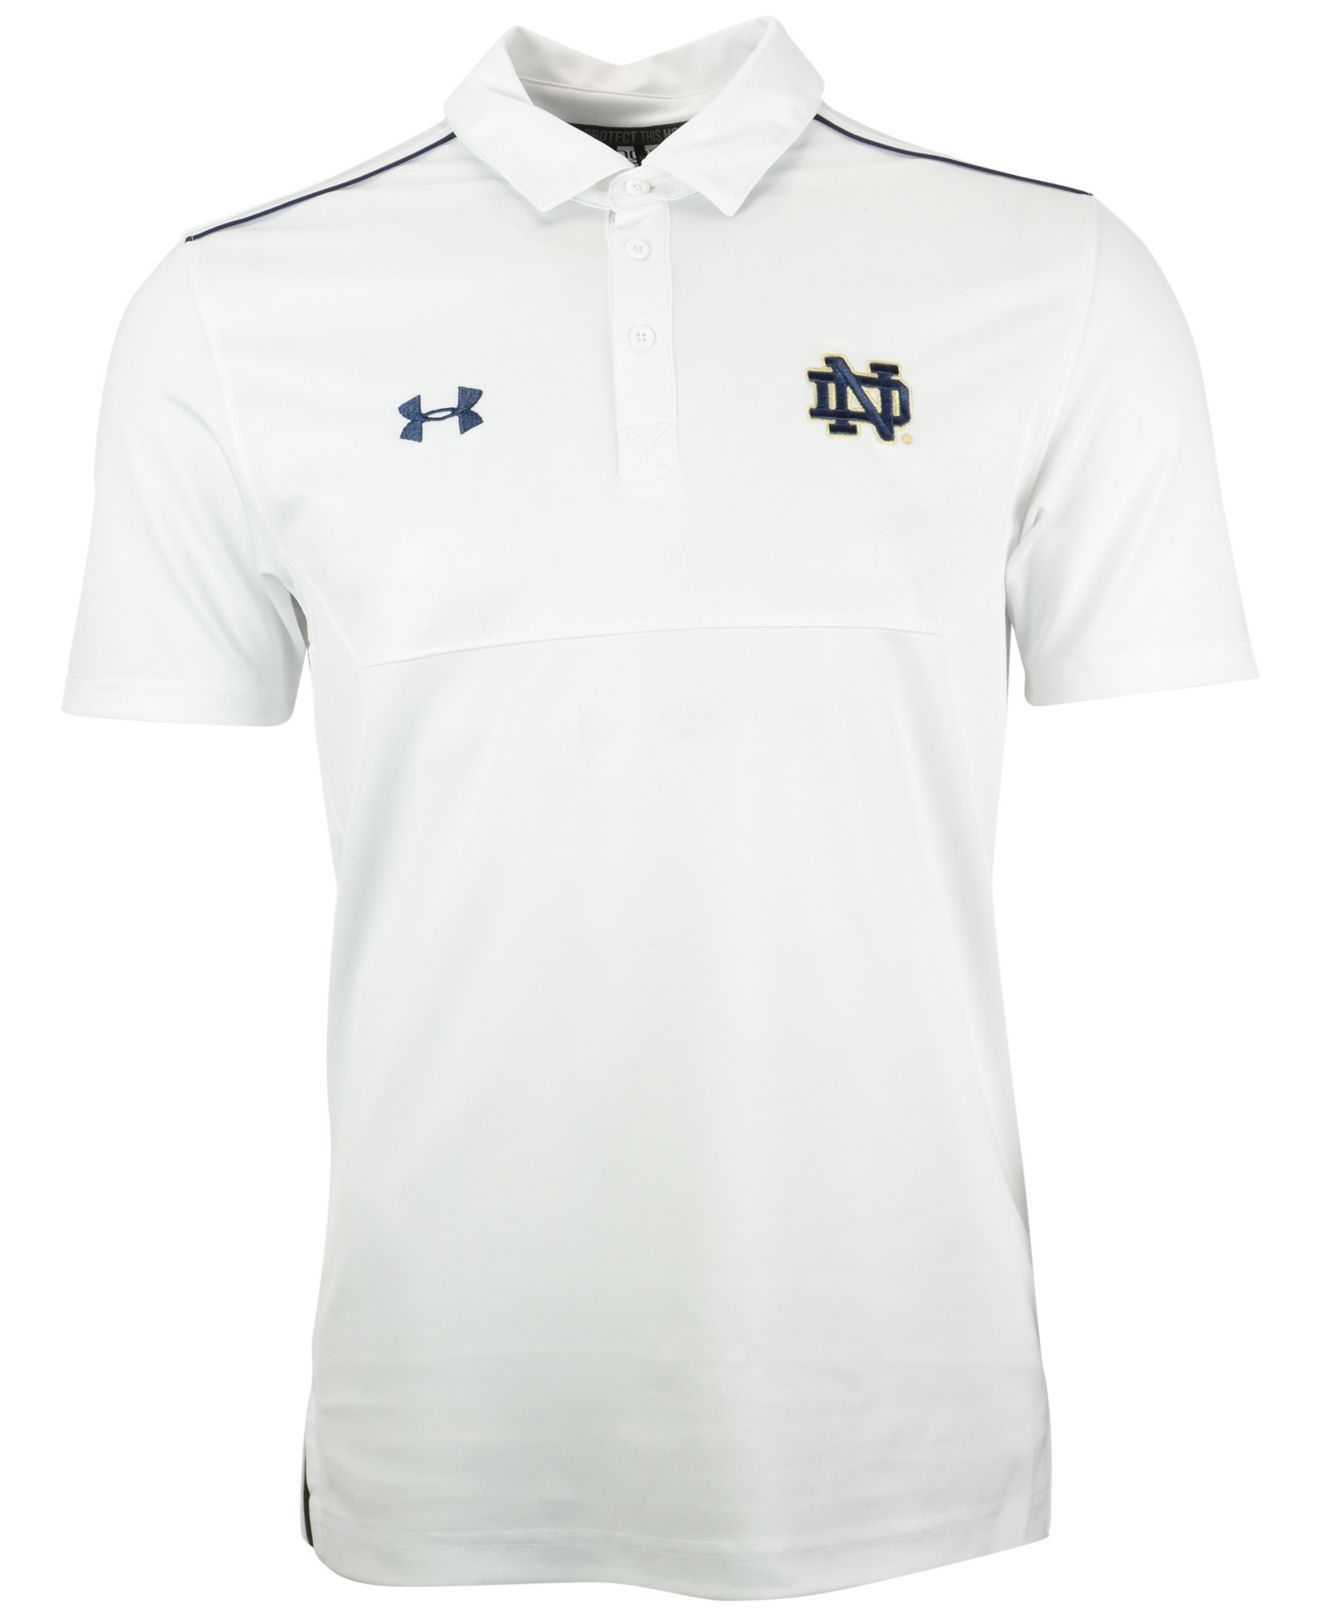 16138bac Under Armour White Men's Notre Dame Fighting Irish Ultimate Sideline Polo  for men